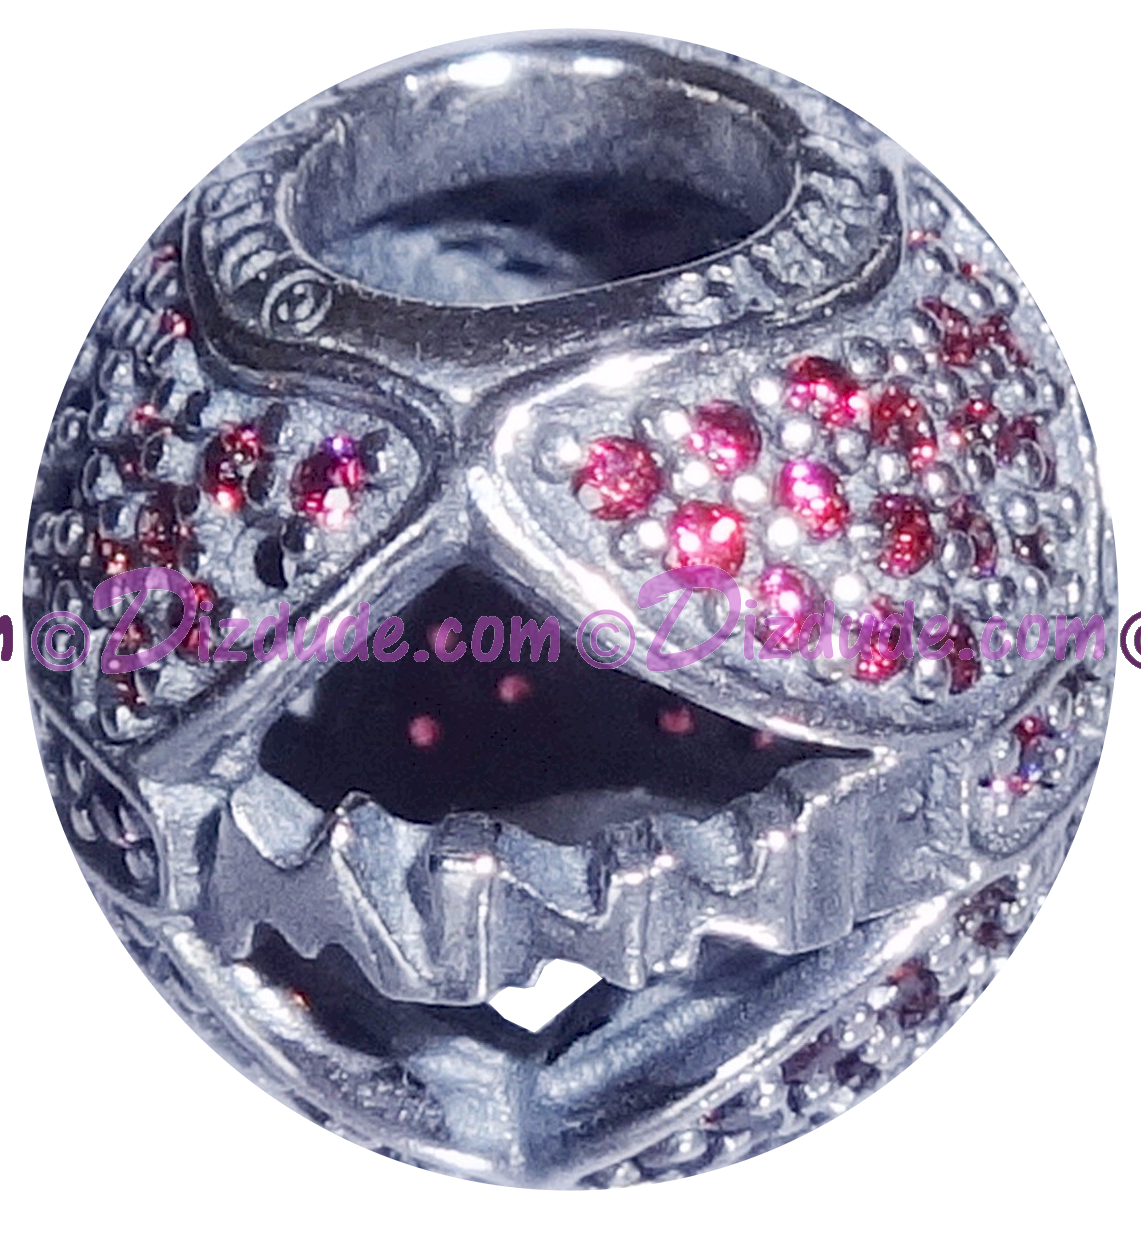 """(SOLD OUT) Disney Pandora """"Minnie's Sparkling Bow"""" Sterling Silver Charm with Red Cubic Zirconias - Disney World Parks Exclusive"""